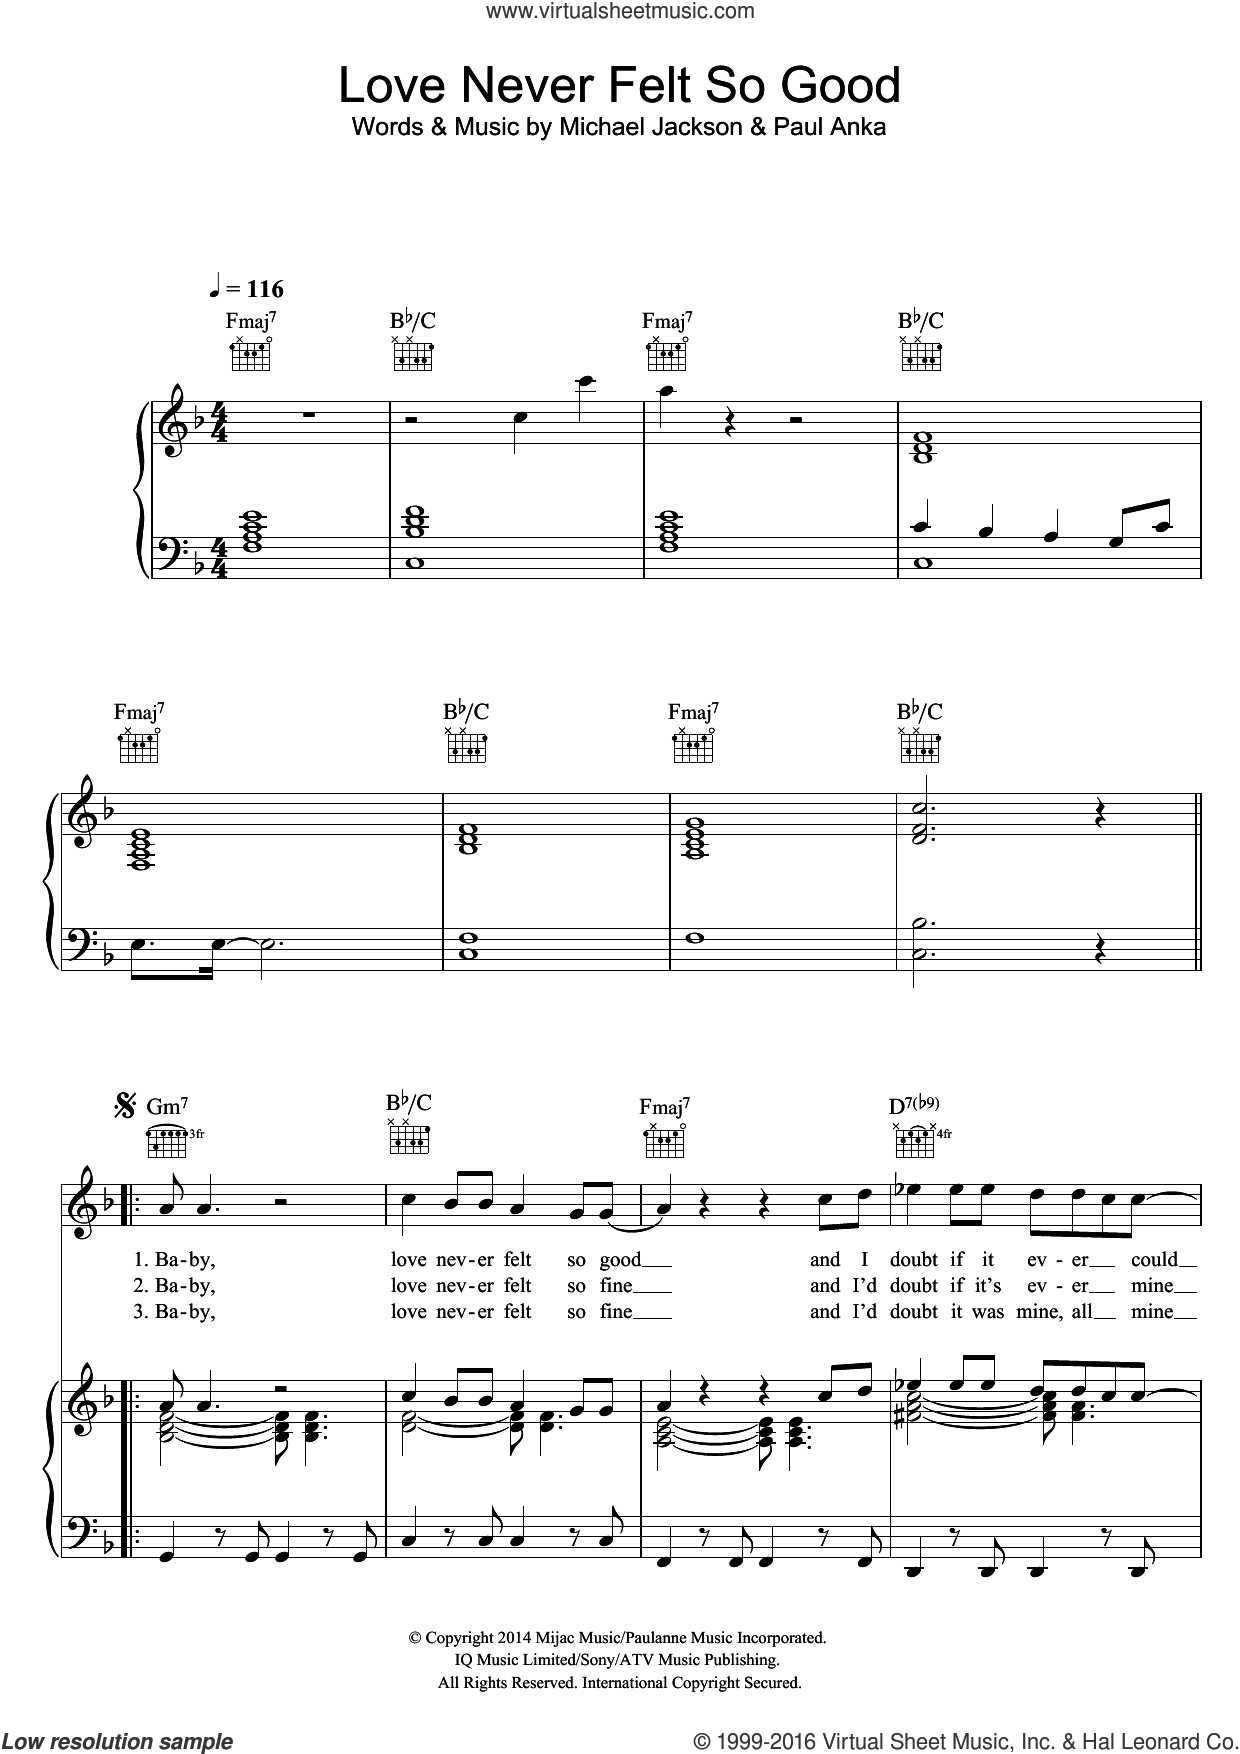 Love Never Felt So Good sheet music for voice, piano or guitar by Michael Jackson and Paul Anka, intermediate skill level